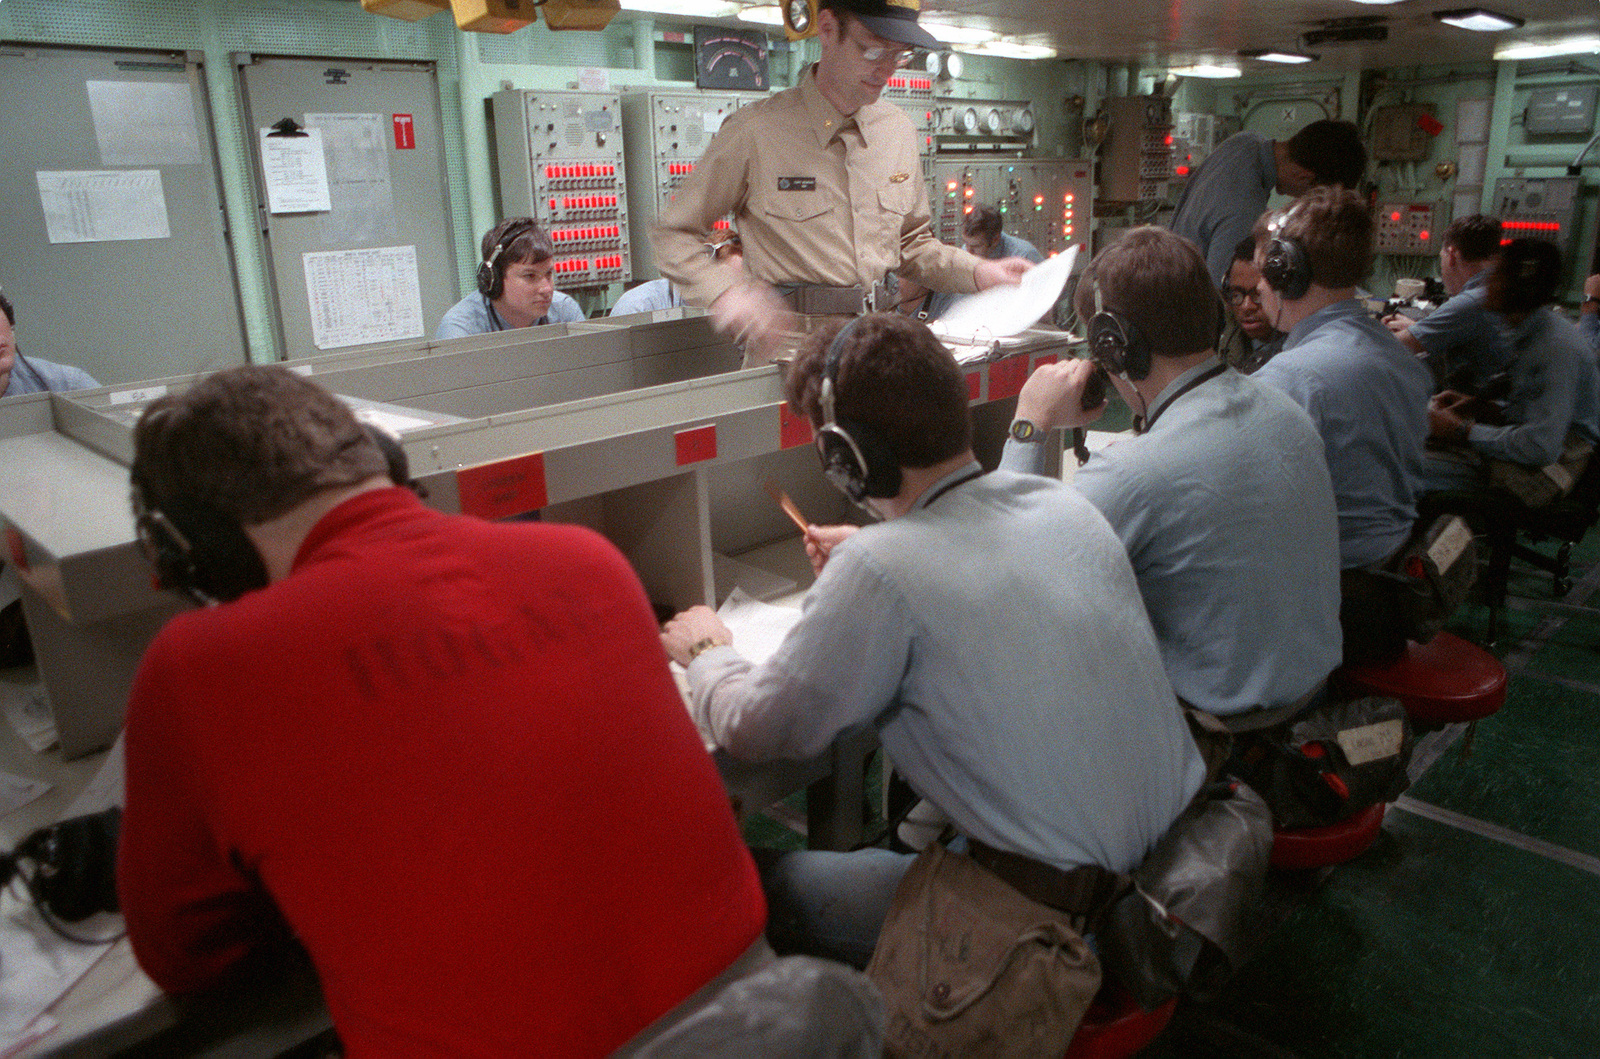 Damage control personnel monitor sound-powered telephones at their stations in damage control central during a general quarters drill aboard the nuclear-powered aircraft carrier USS DWIGHT D. EISENHOWER (CVN 69). The drill is taking place during FLEET EX '90